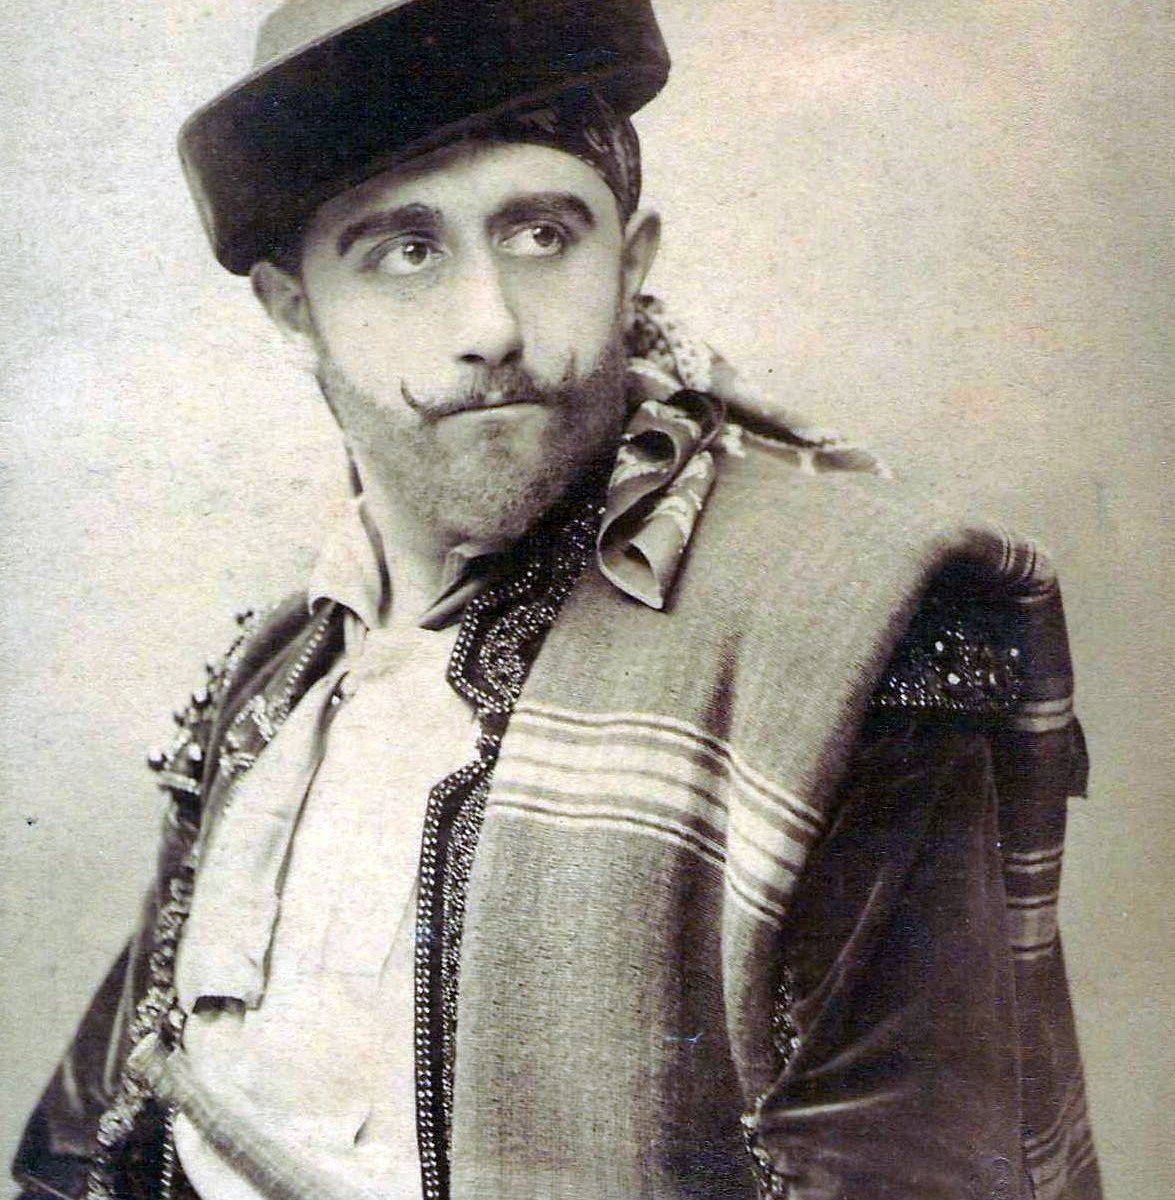 Jacques Bouhy as Escamillo, the role he created in 1875